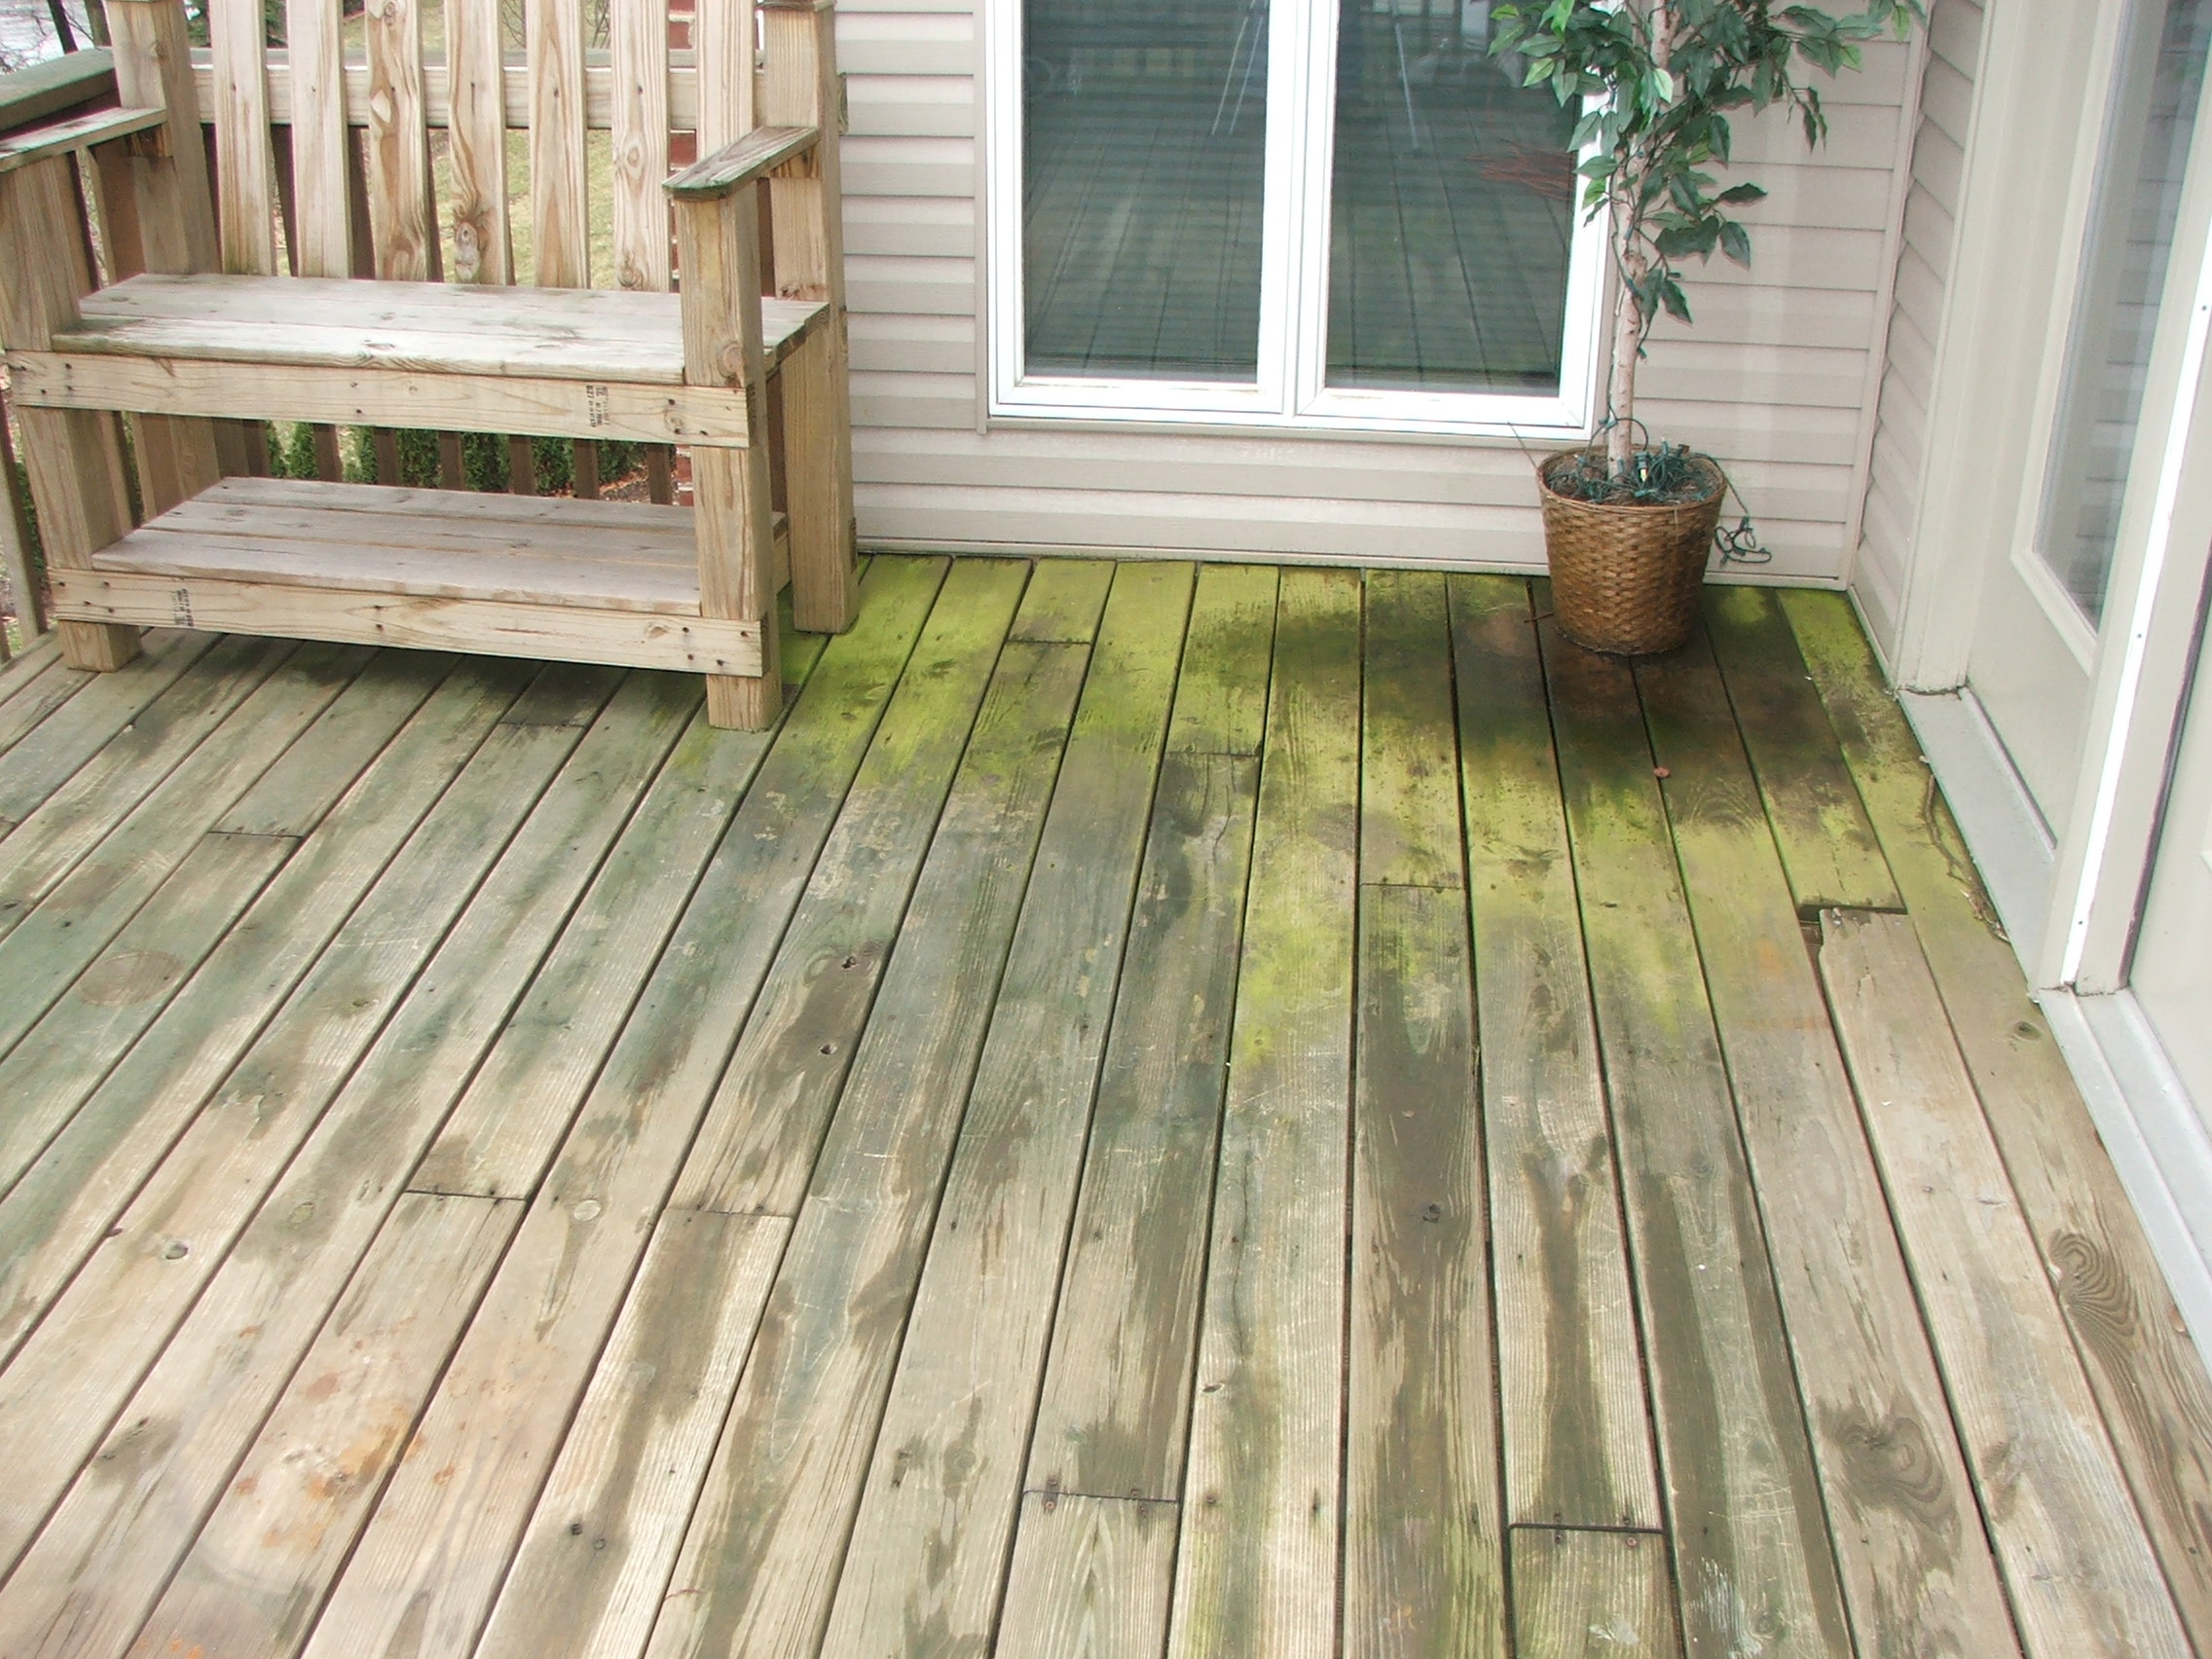 Green deck photo